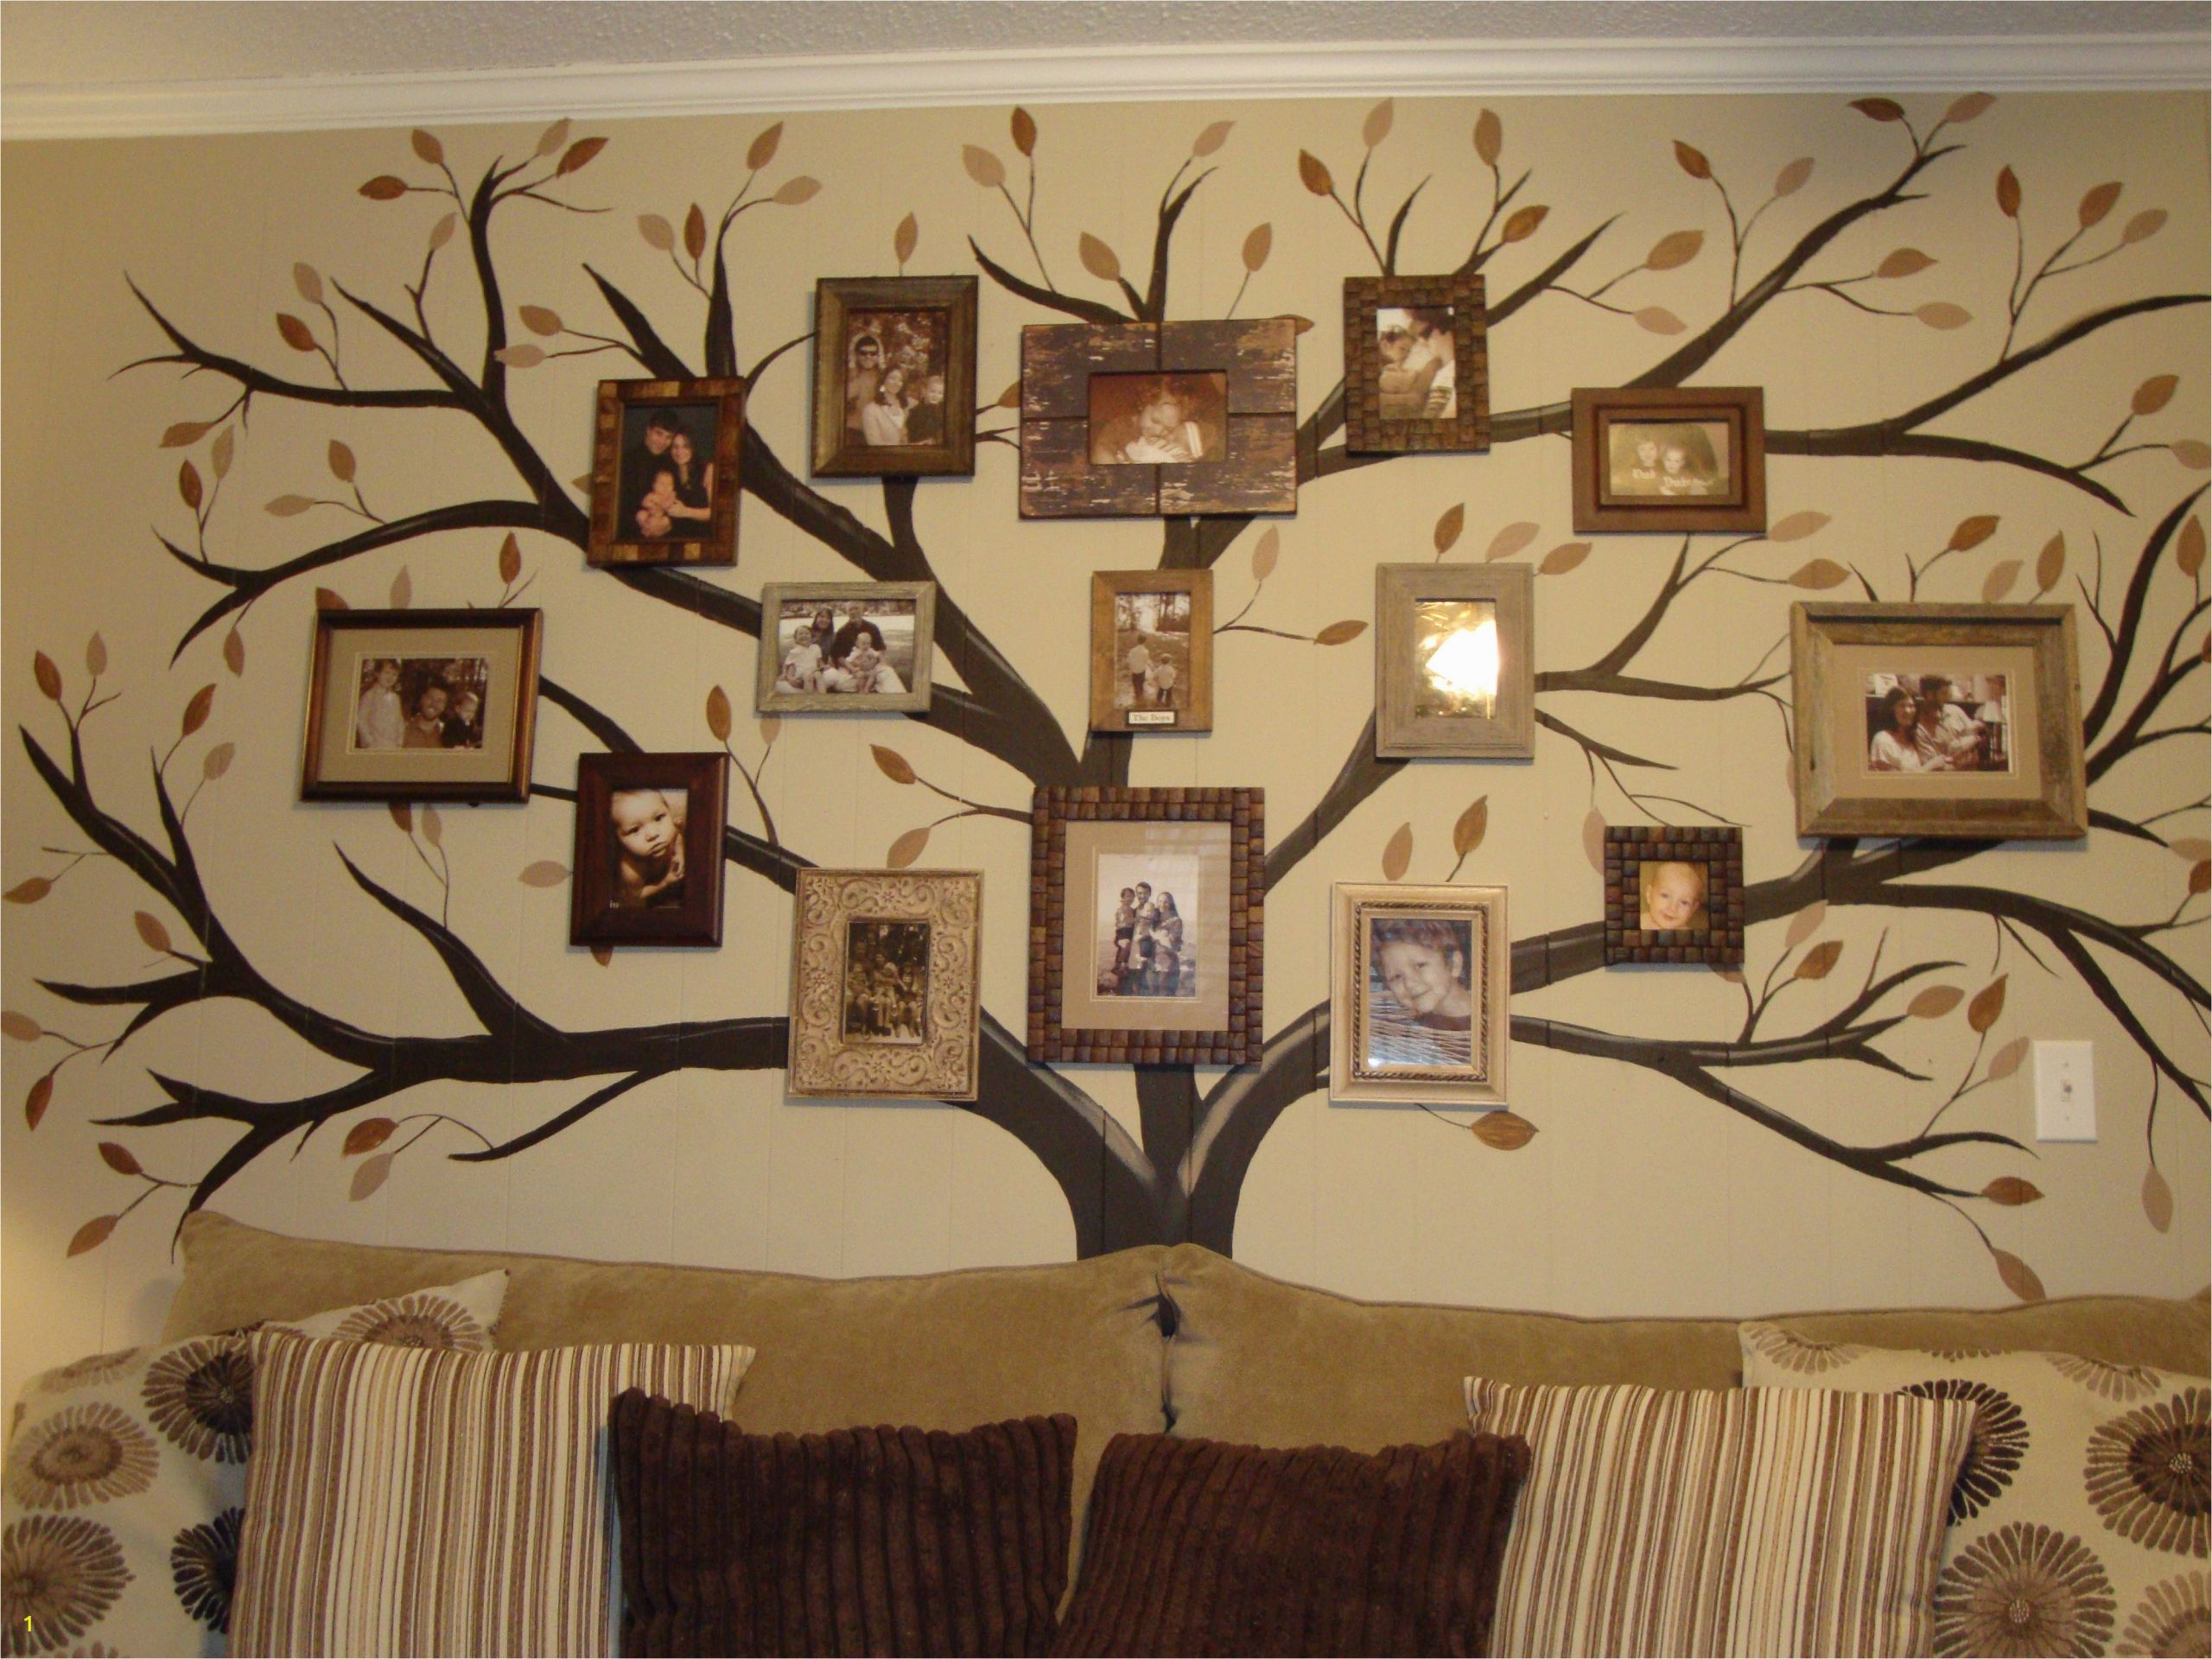 How to Make A Family Tree Wall Mural My Family Tree Mural Pied From Another I Found On